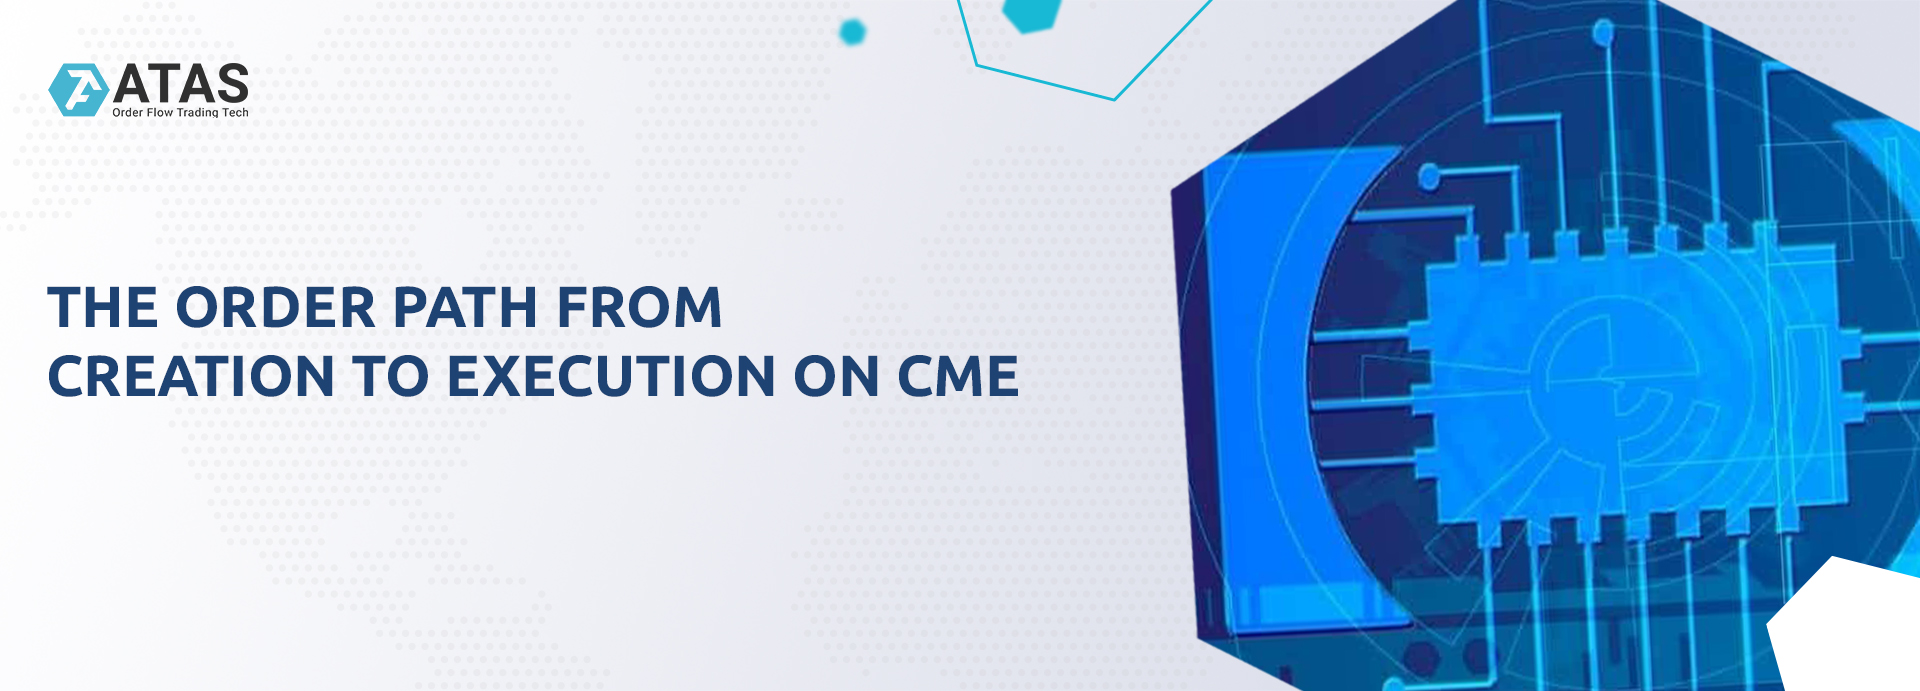 THE ORDER PATH FROM CREATION TO EXECUTION ON CME